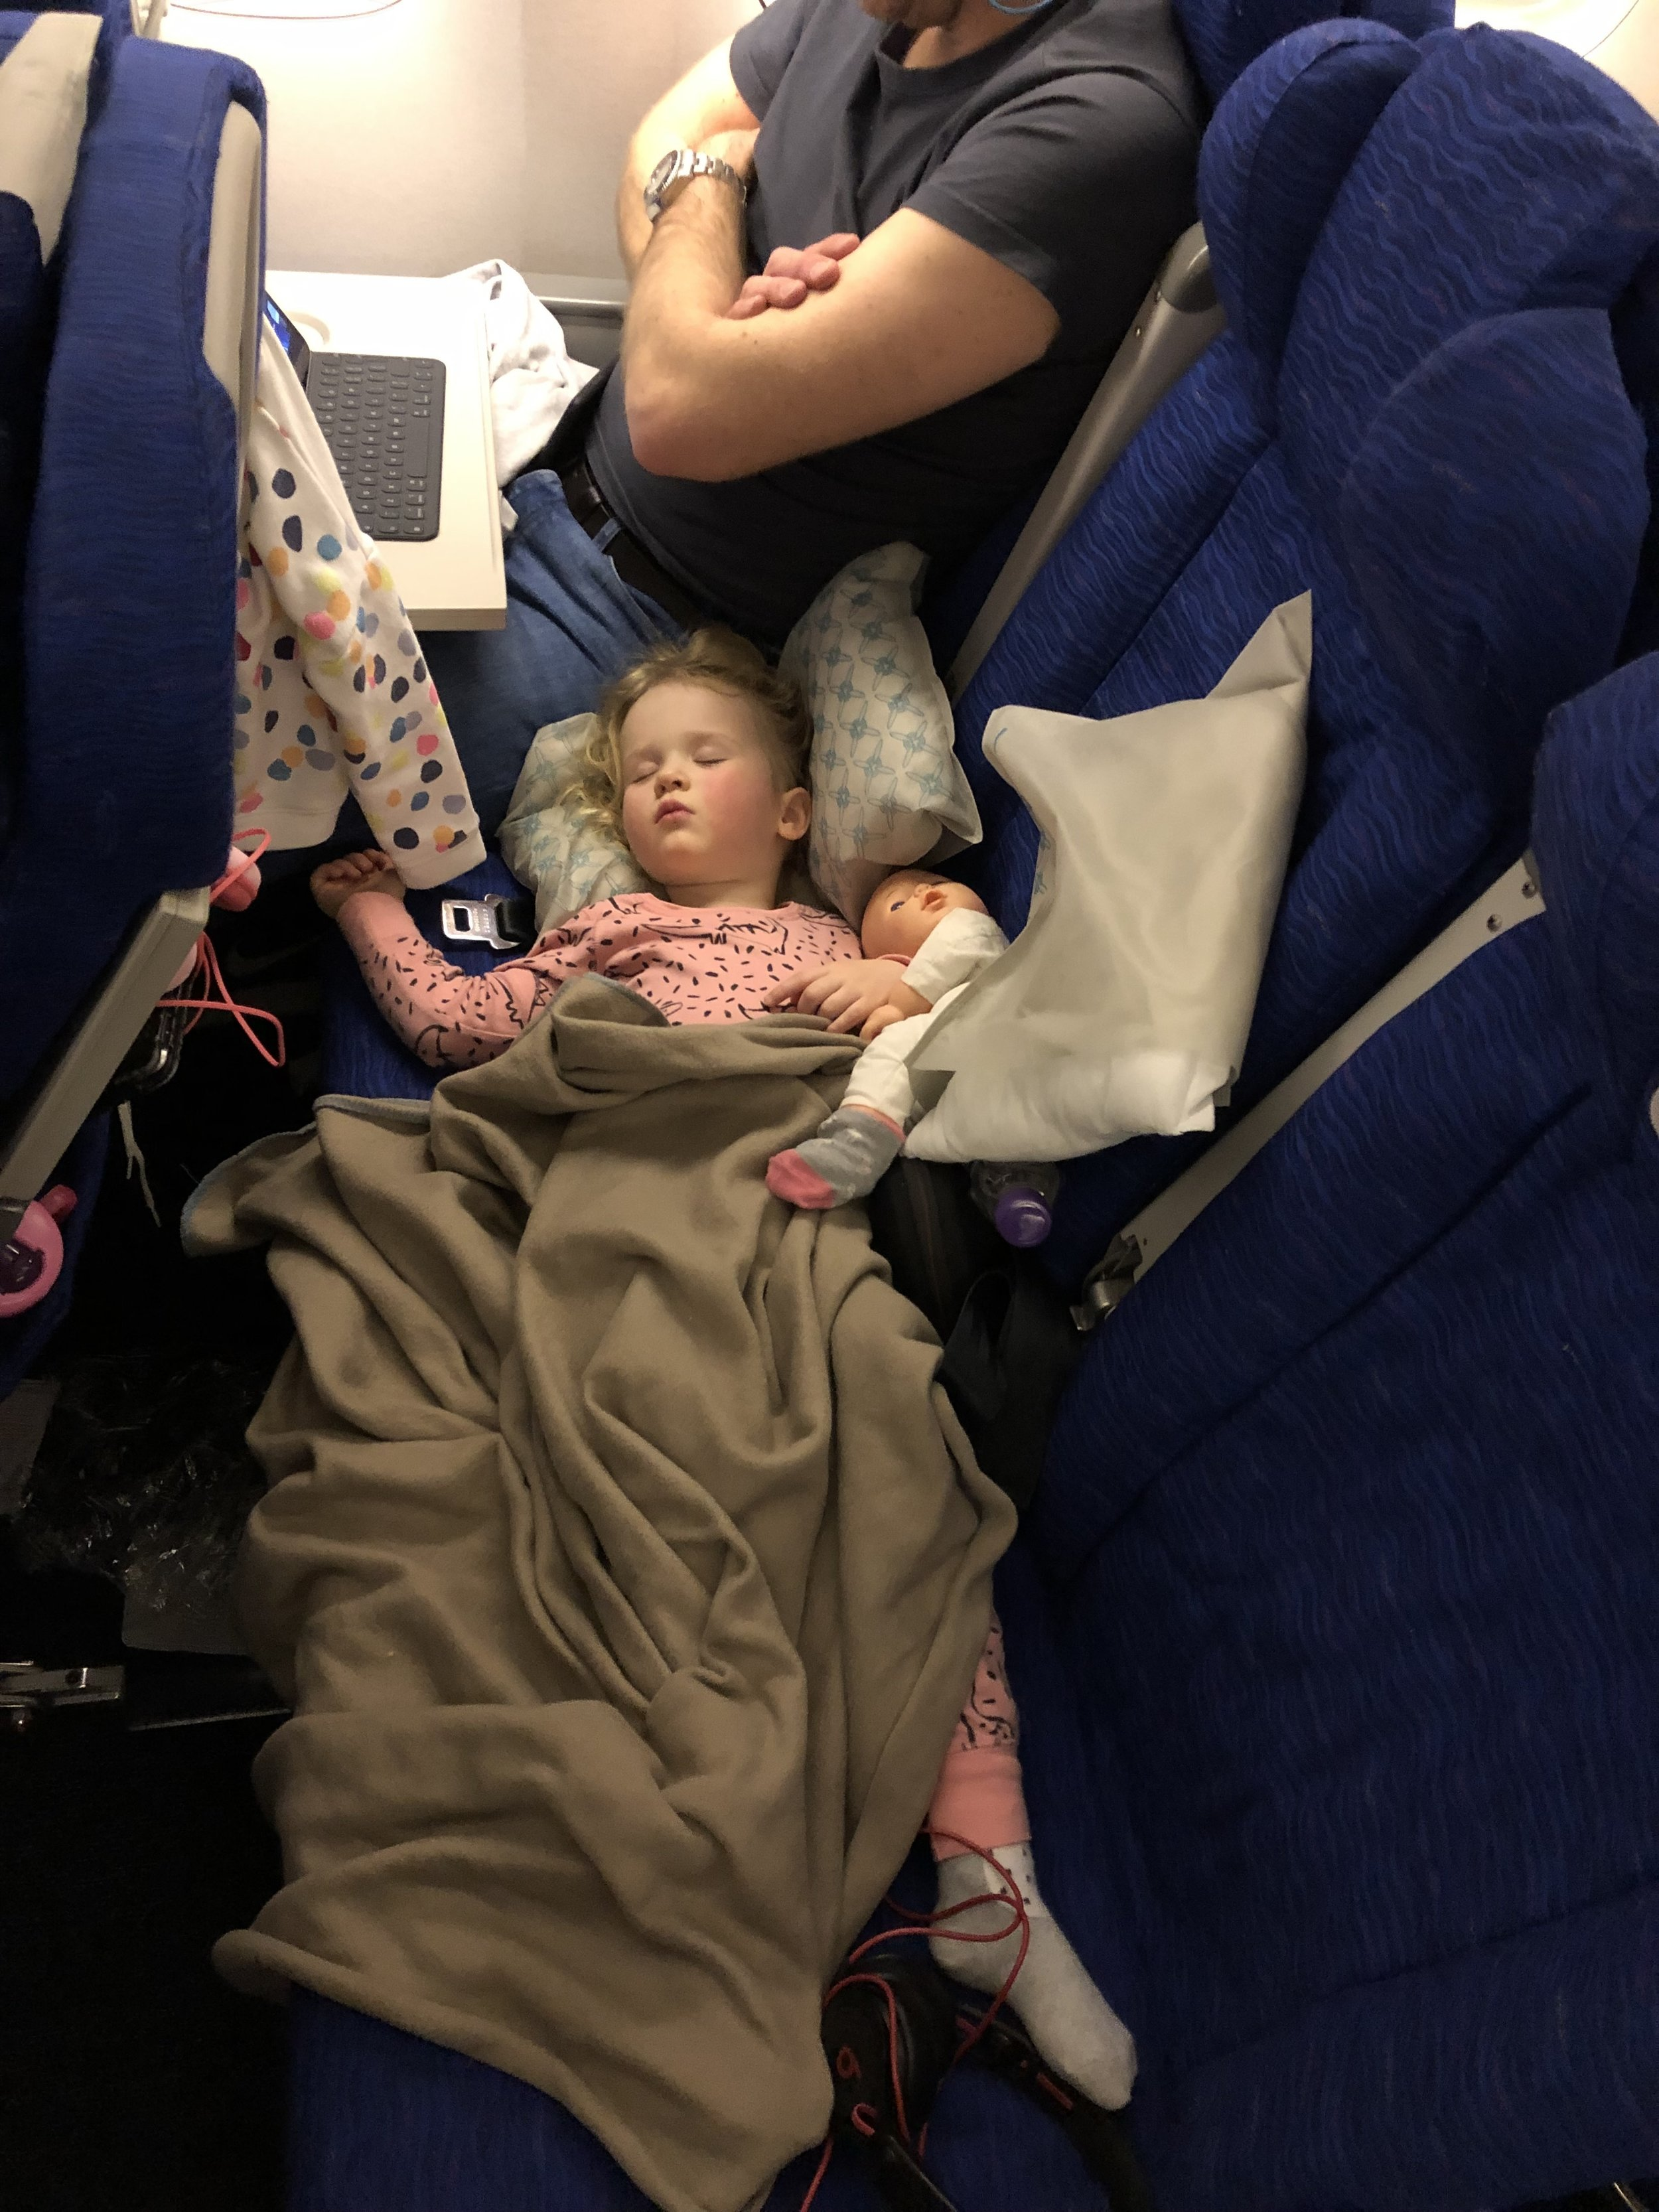 Every flight is business when you're two!